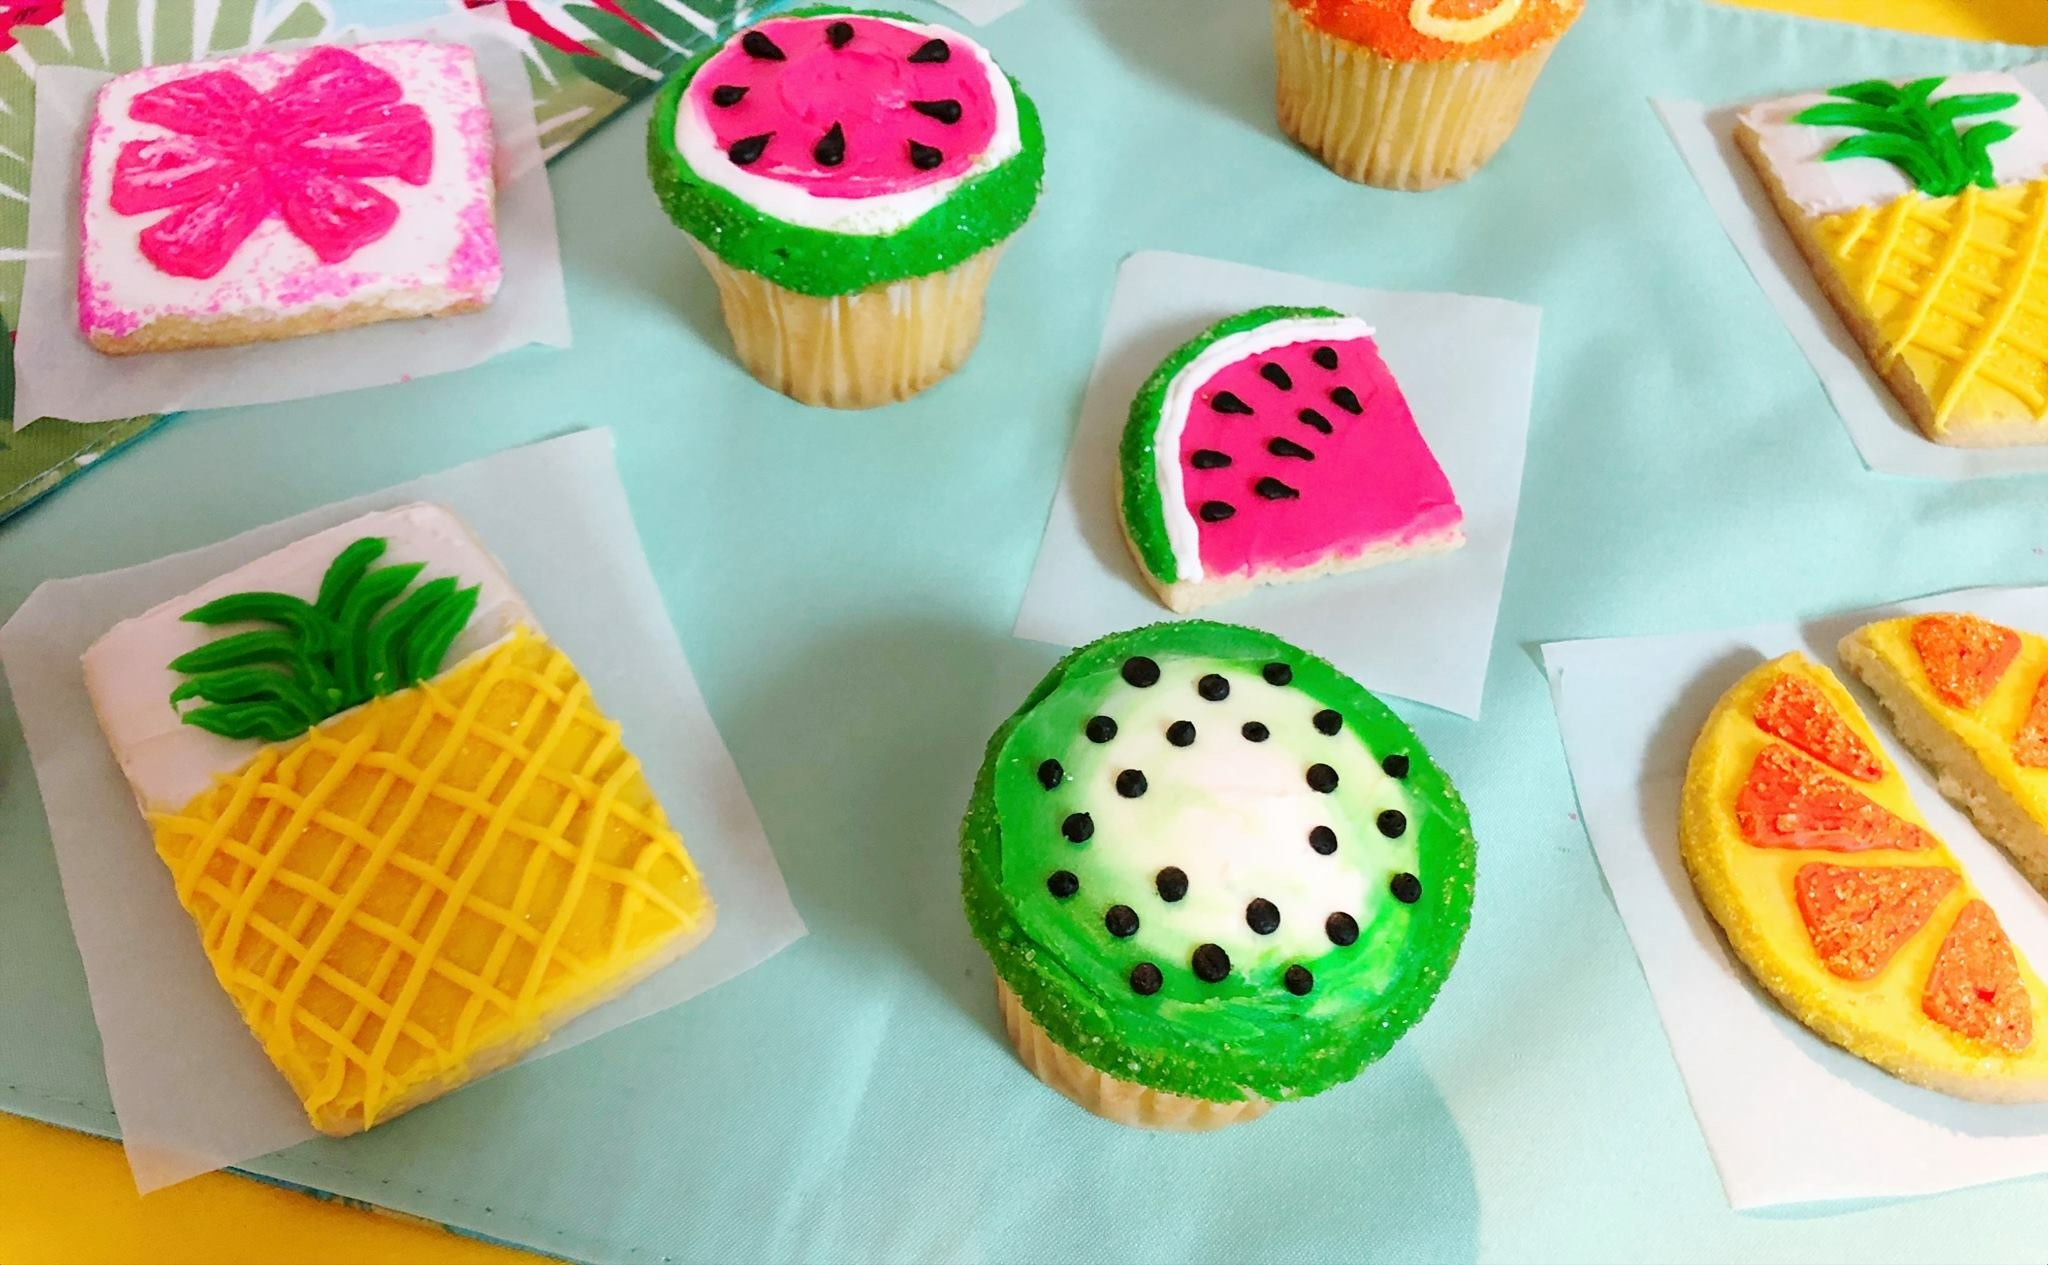 Cupcakes and cookies decorated in class will be similar to picture.